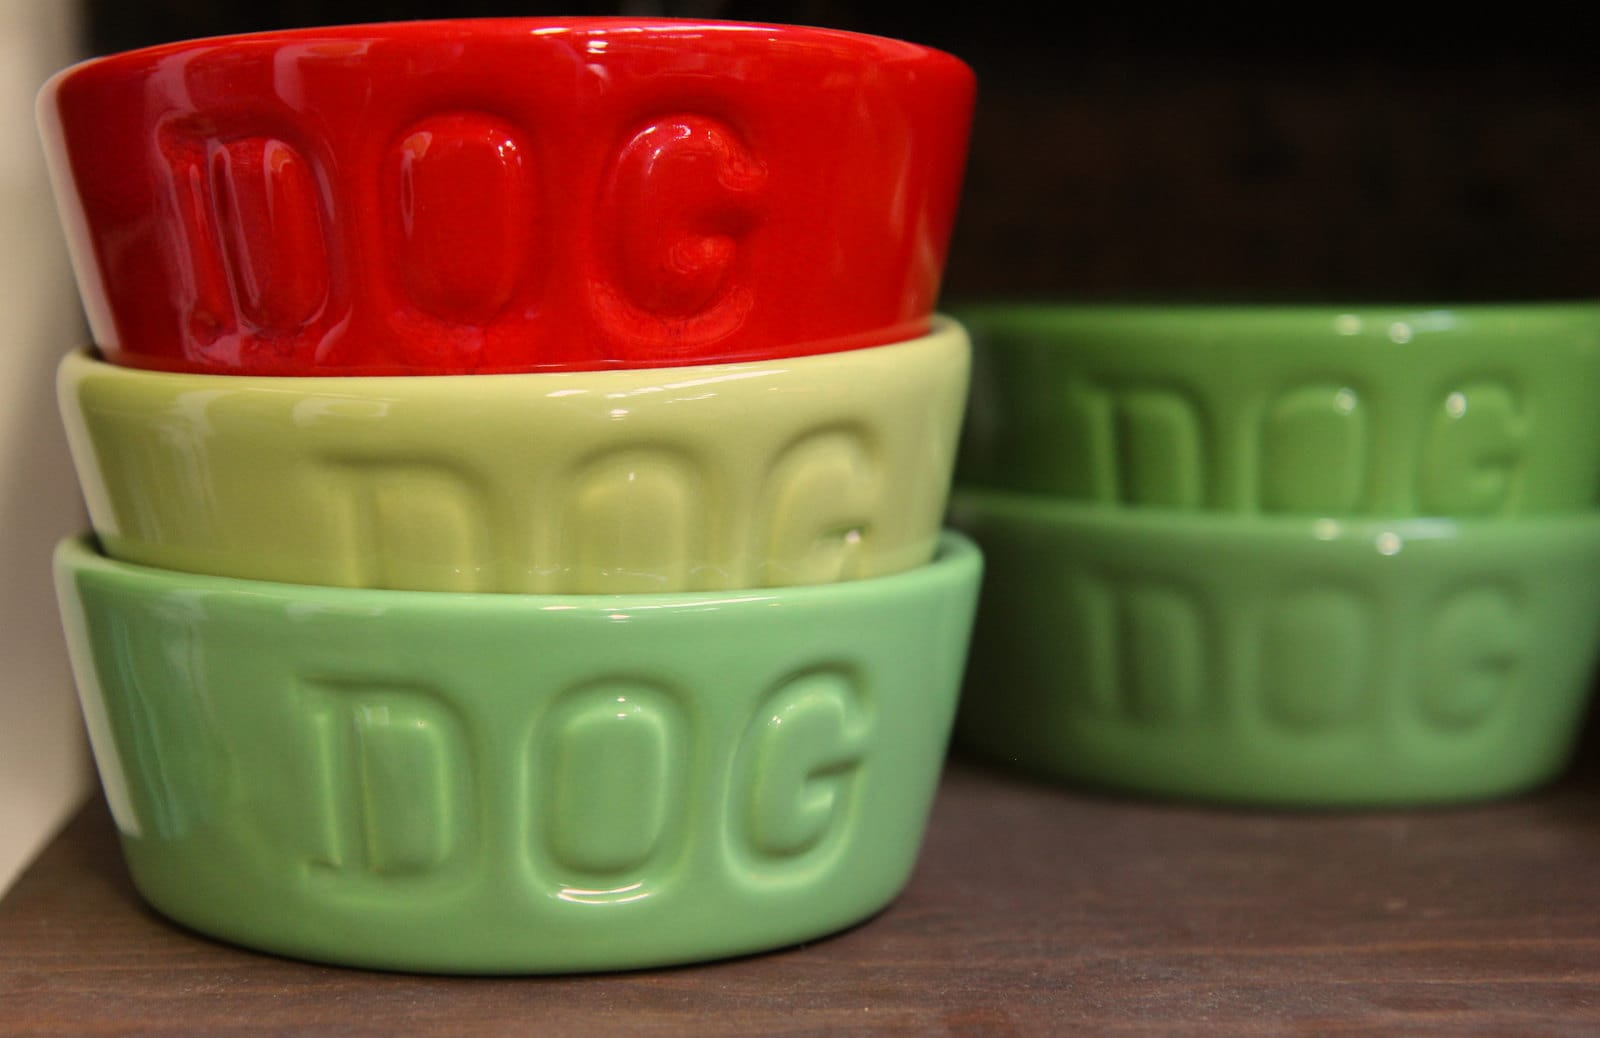 Hot Dogs and Woofles: A History of Dog Food